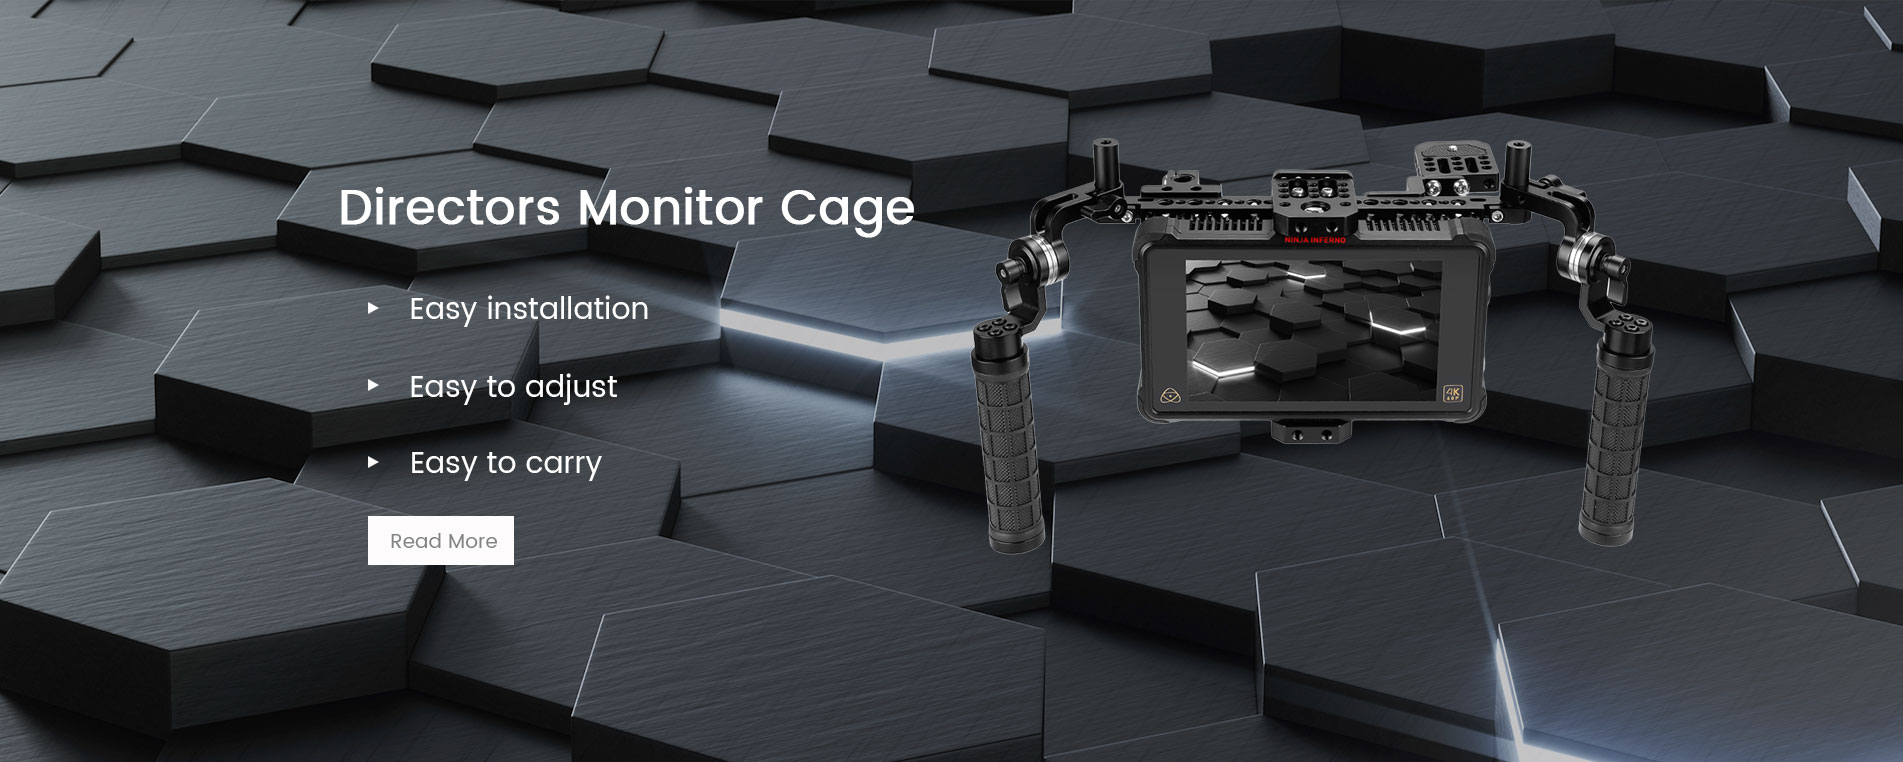 Director's Monitor Cage